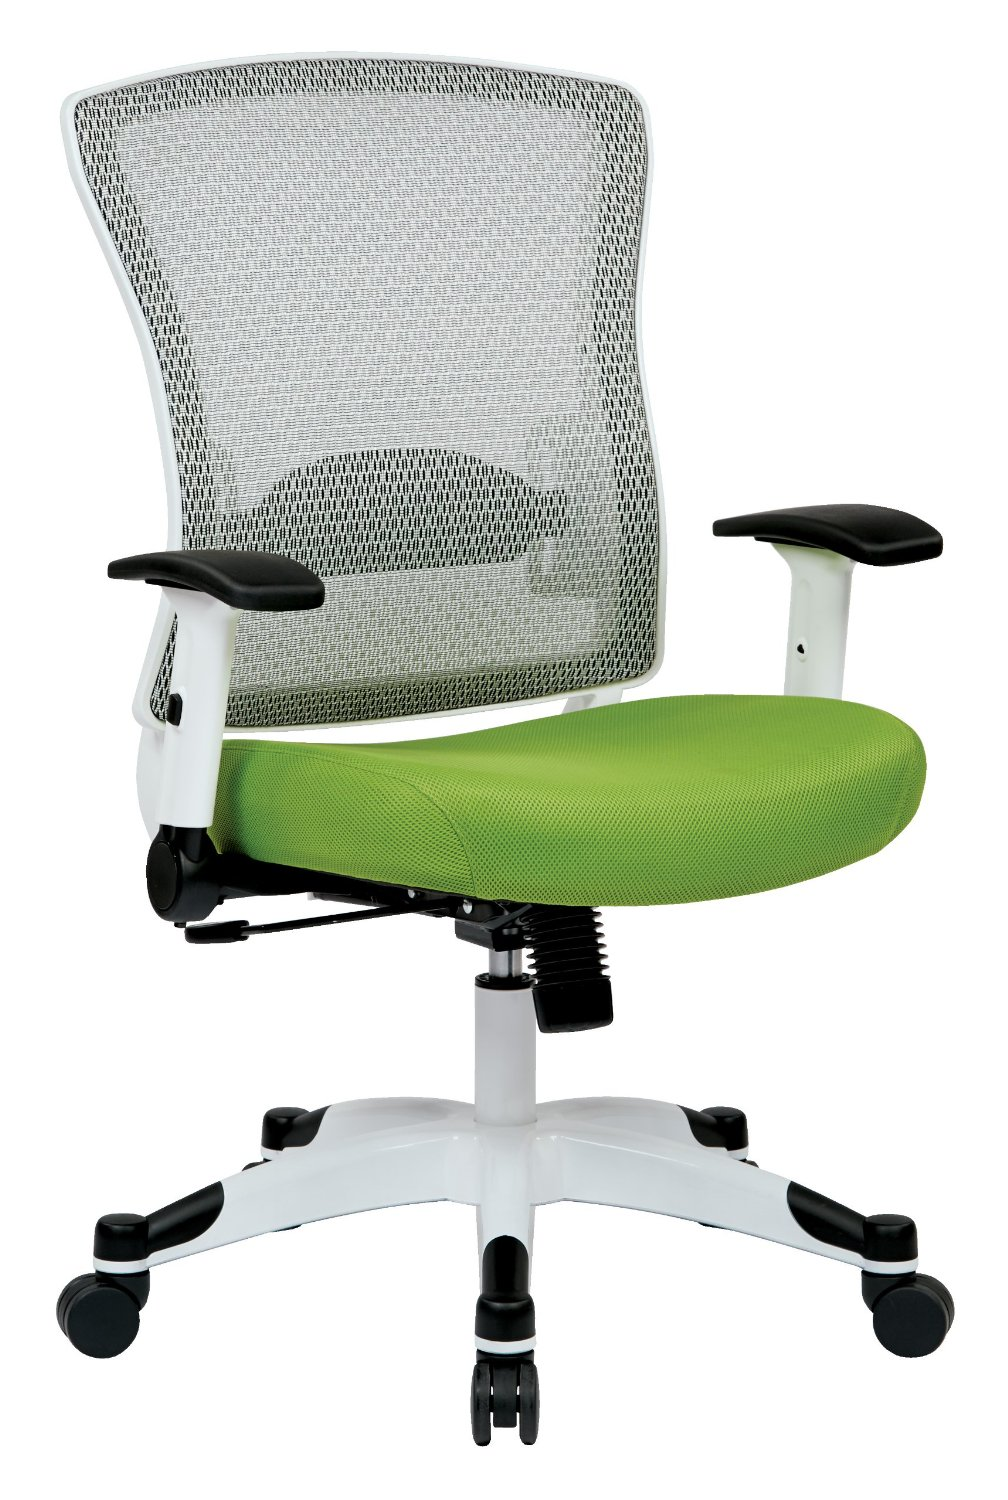 fun desk chairs rockin roller chair top selling for office by cubicles com 317w w1c1f2w